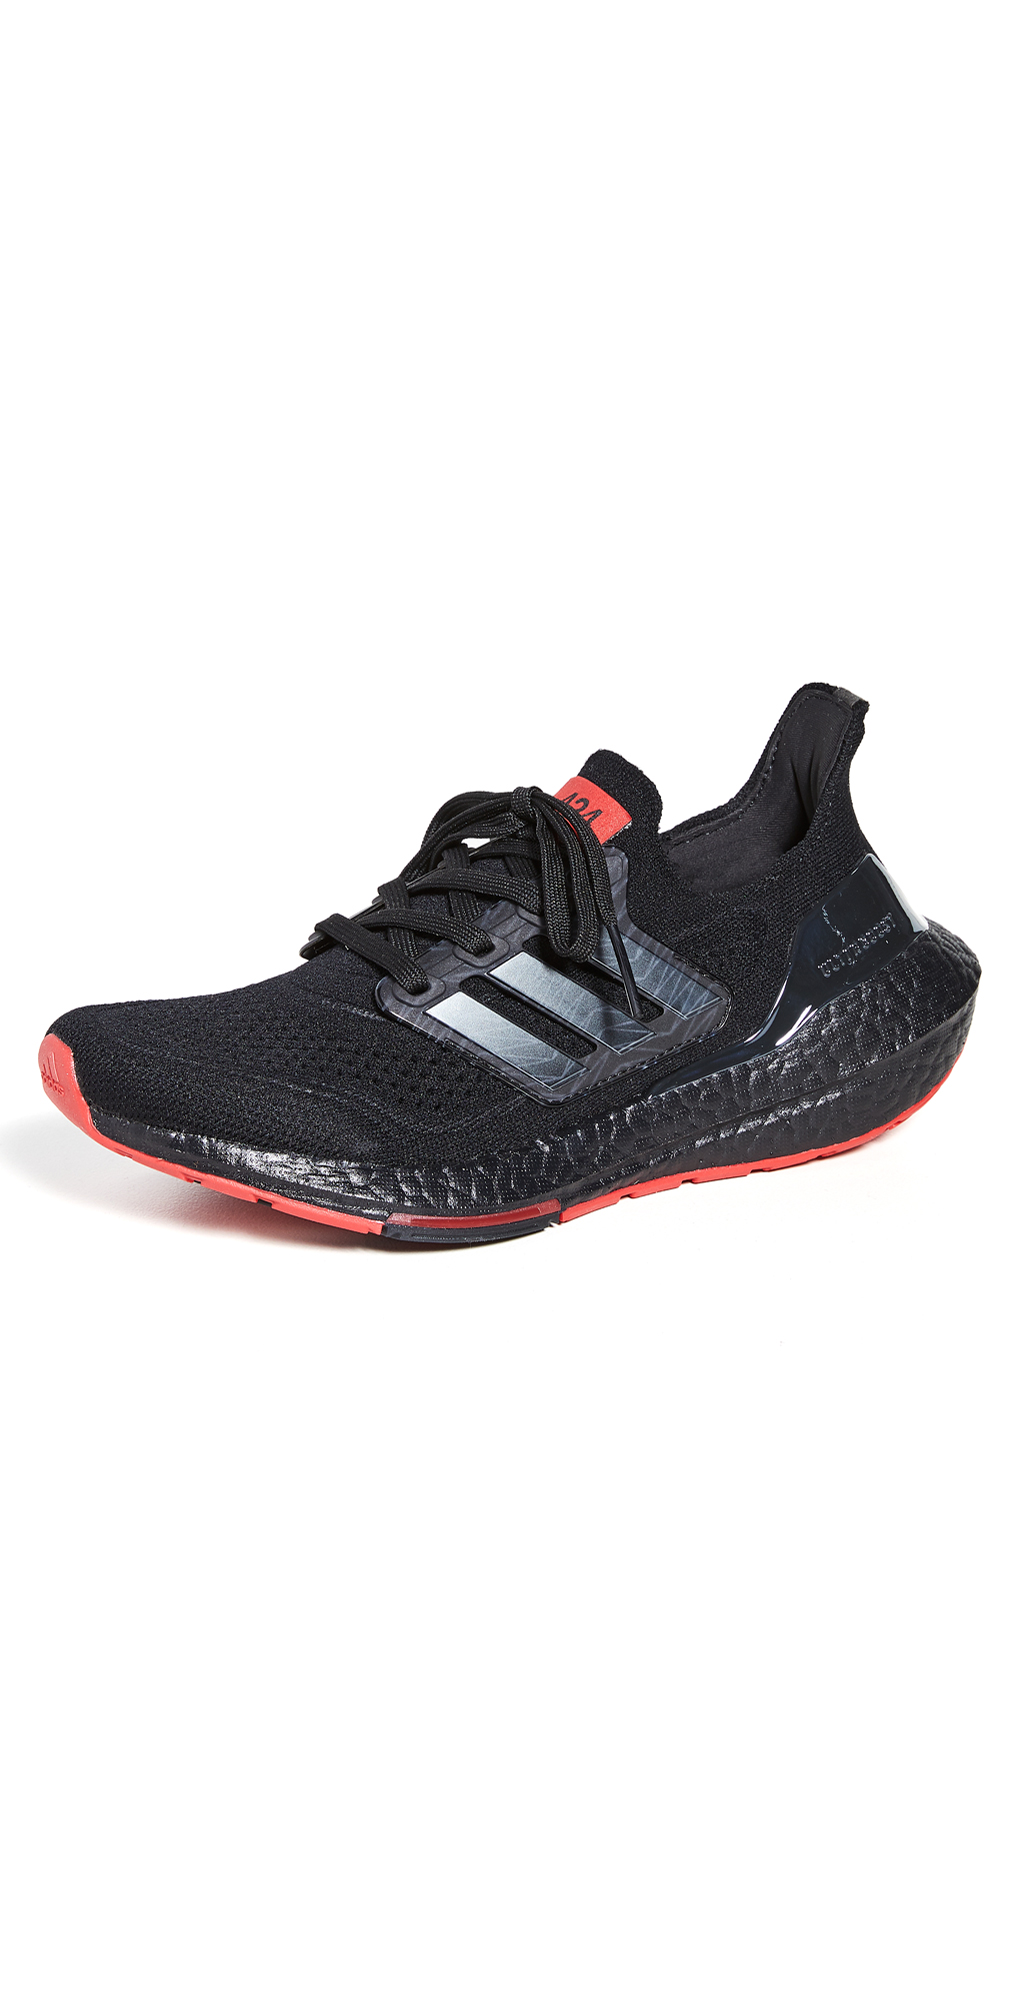 adidas x Arsenal 424 Ultraboost Sneakers